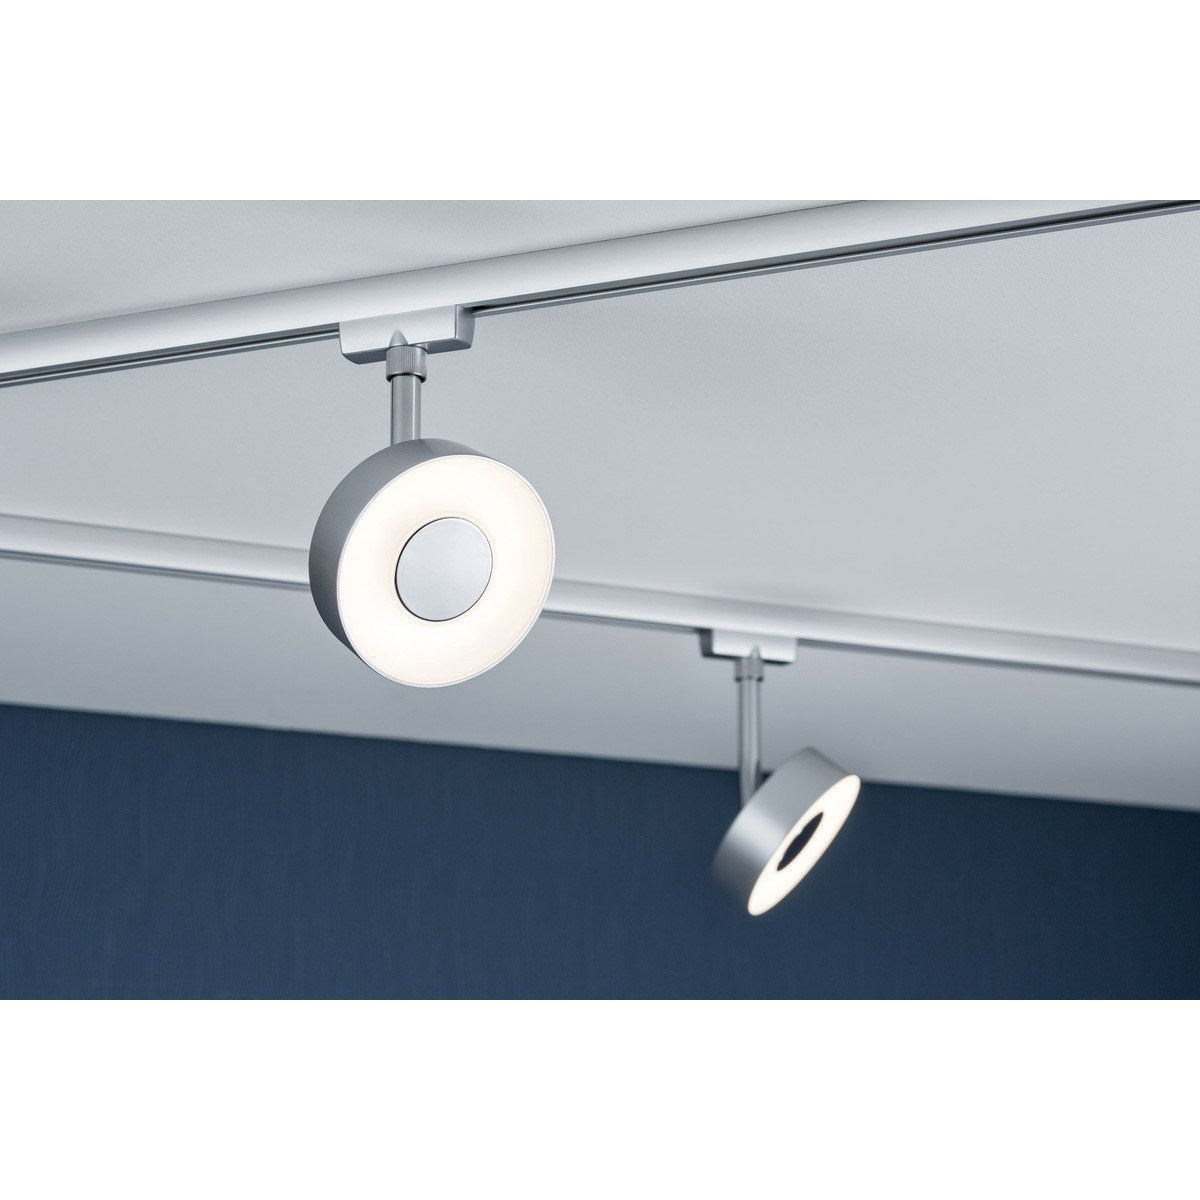 spots et suspensions pour rail paulmann circle led 1 x 5 w leroy merlin. Black Bedroom Furniture Sets. Home Design Ideas